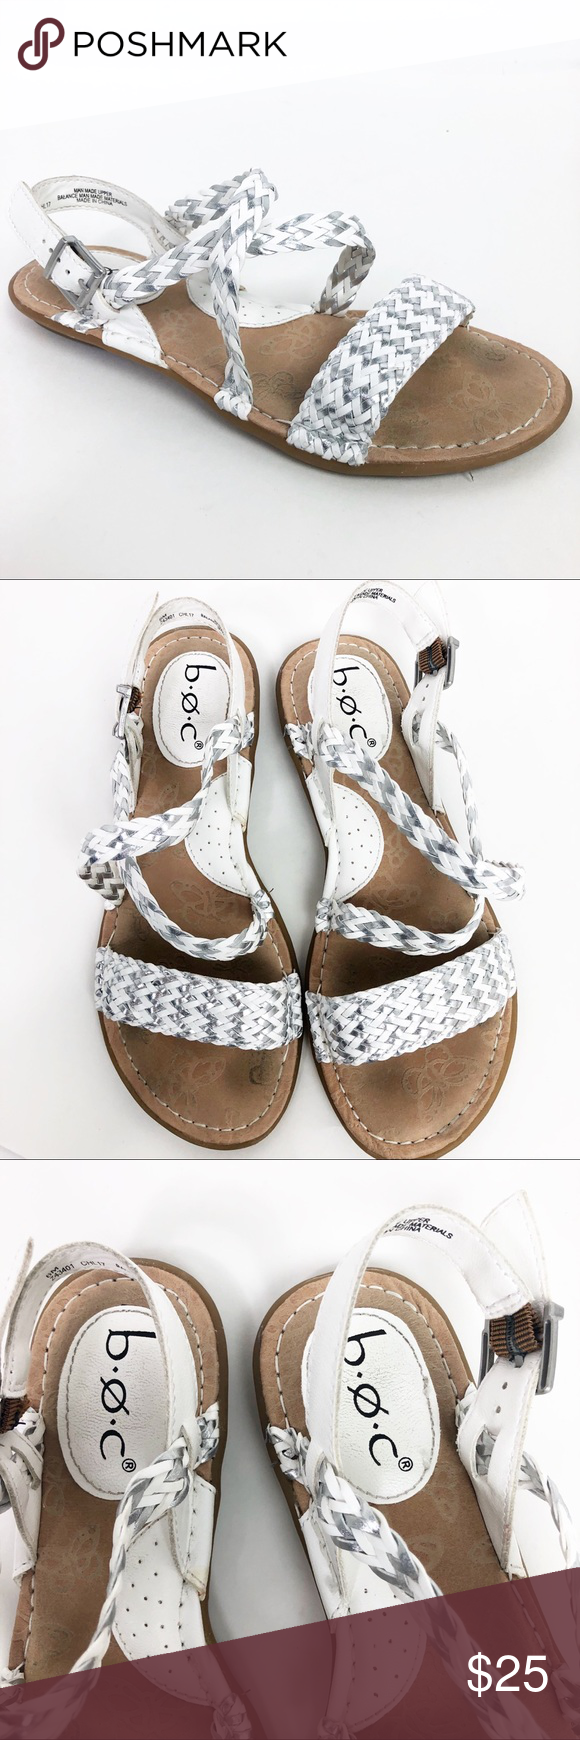 937ff5349957 Born Concepts Sandal Size 6 Dena Braided Slingback BOC Born Concepts  Sandals White with Metallic Silver Size 6 Dena Braided Slingback Condition   Pre-loved